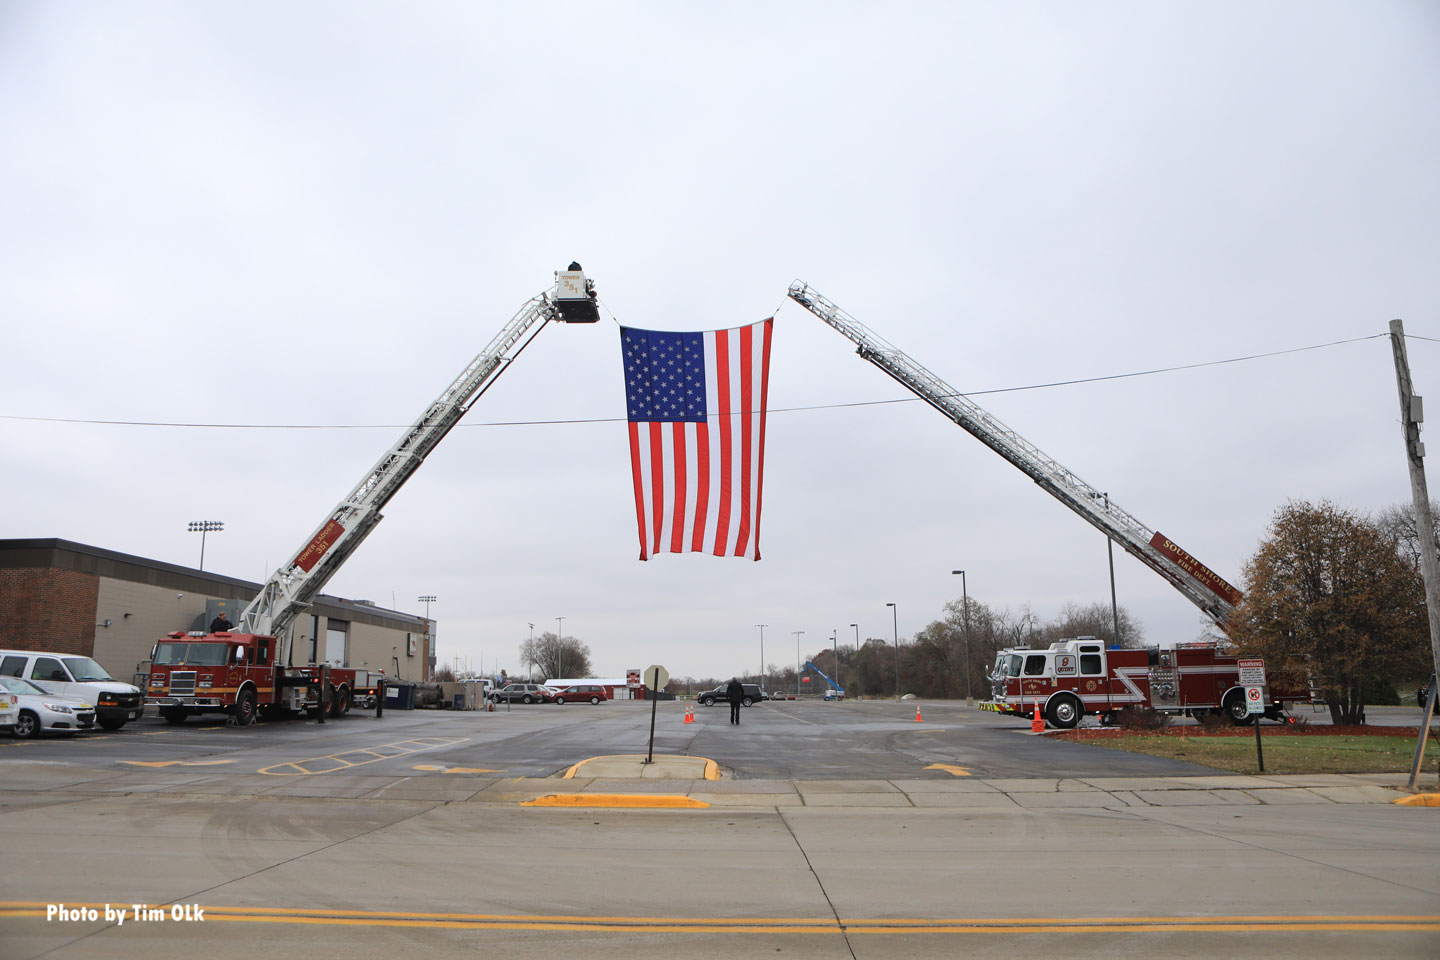 Massive American flag between two aerial devices